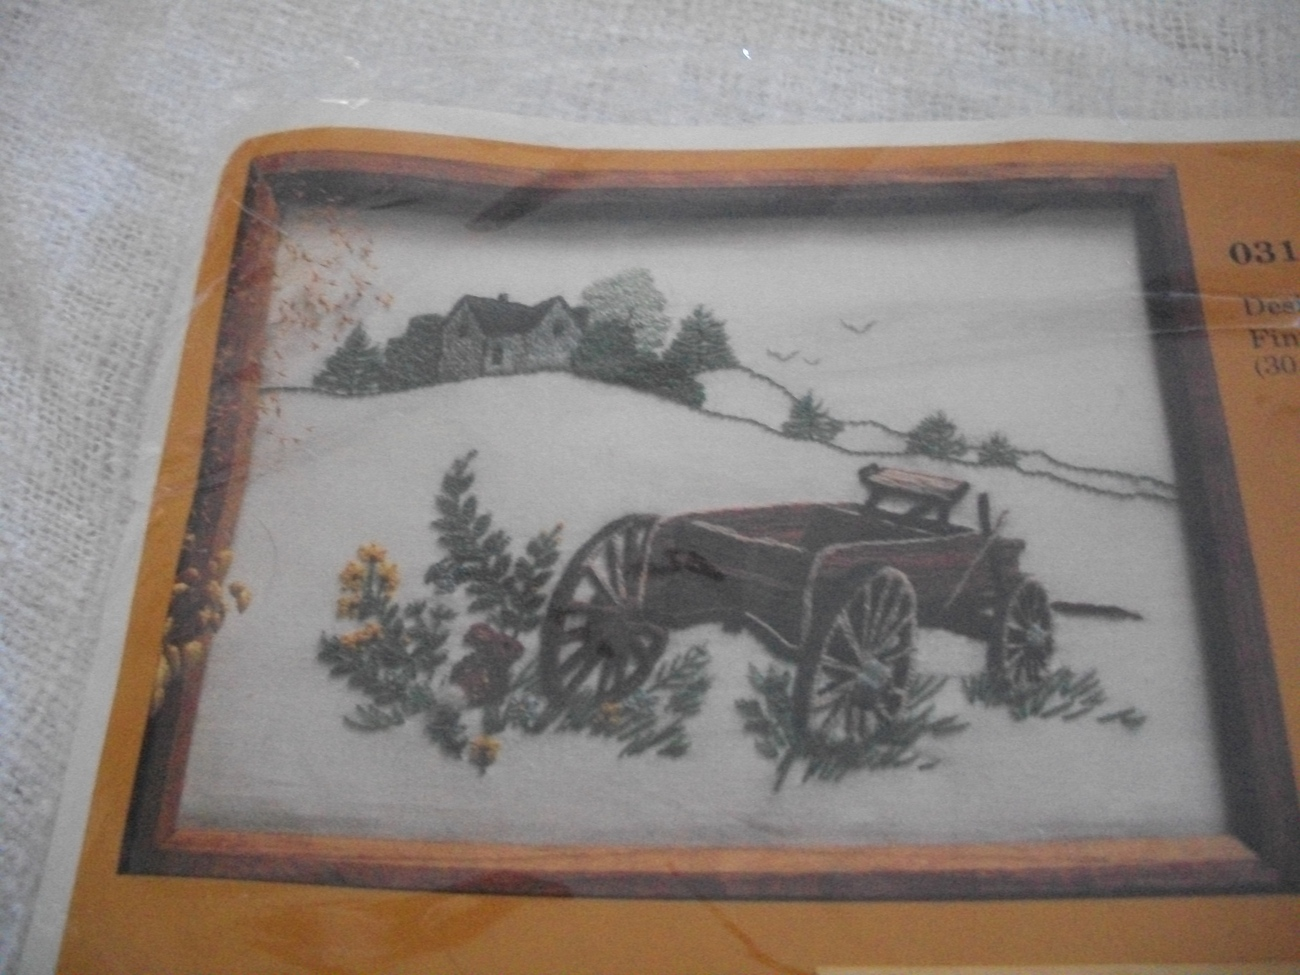 Old Wagon Crewel Embroidery Kit: Comes with Yarns, Canvas & Directions